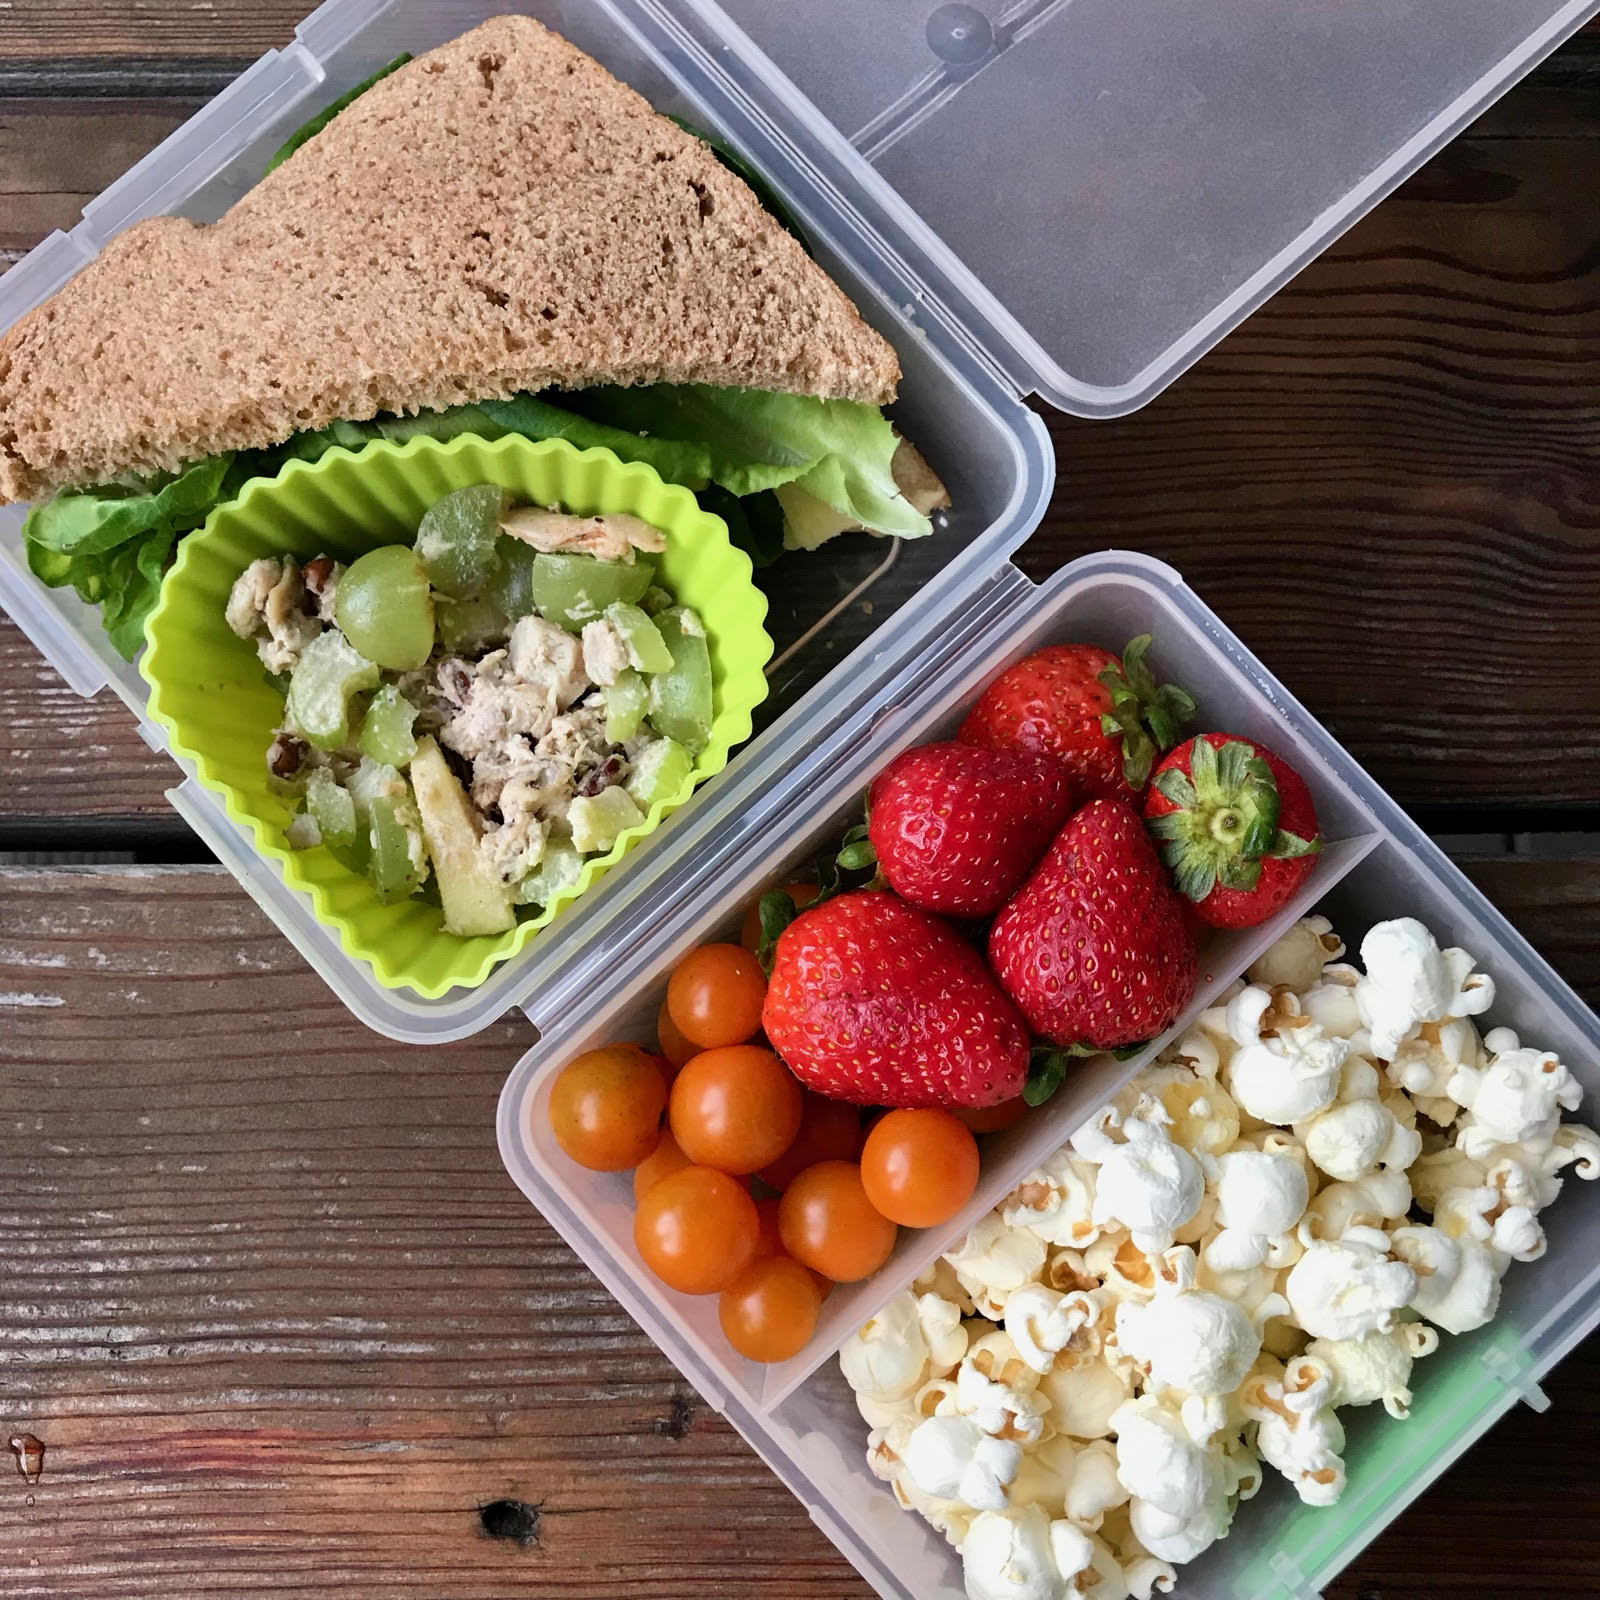 Hummus/cheese/lettuce sandwich, Loaded Chicken Salad, strawberries, cherry tomatoes, and popcorn